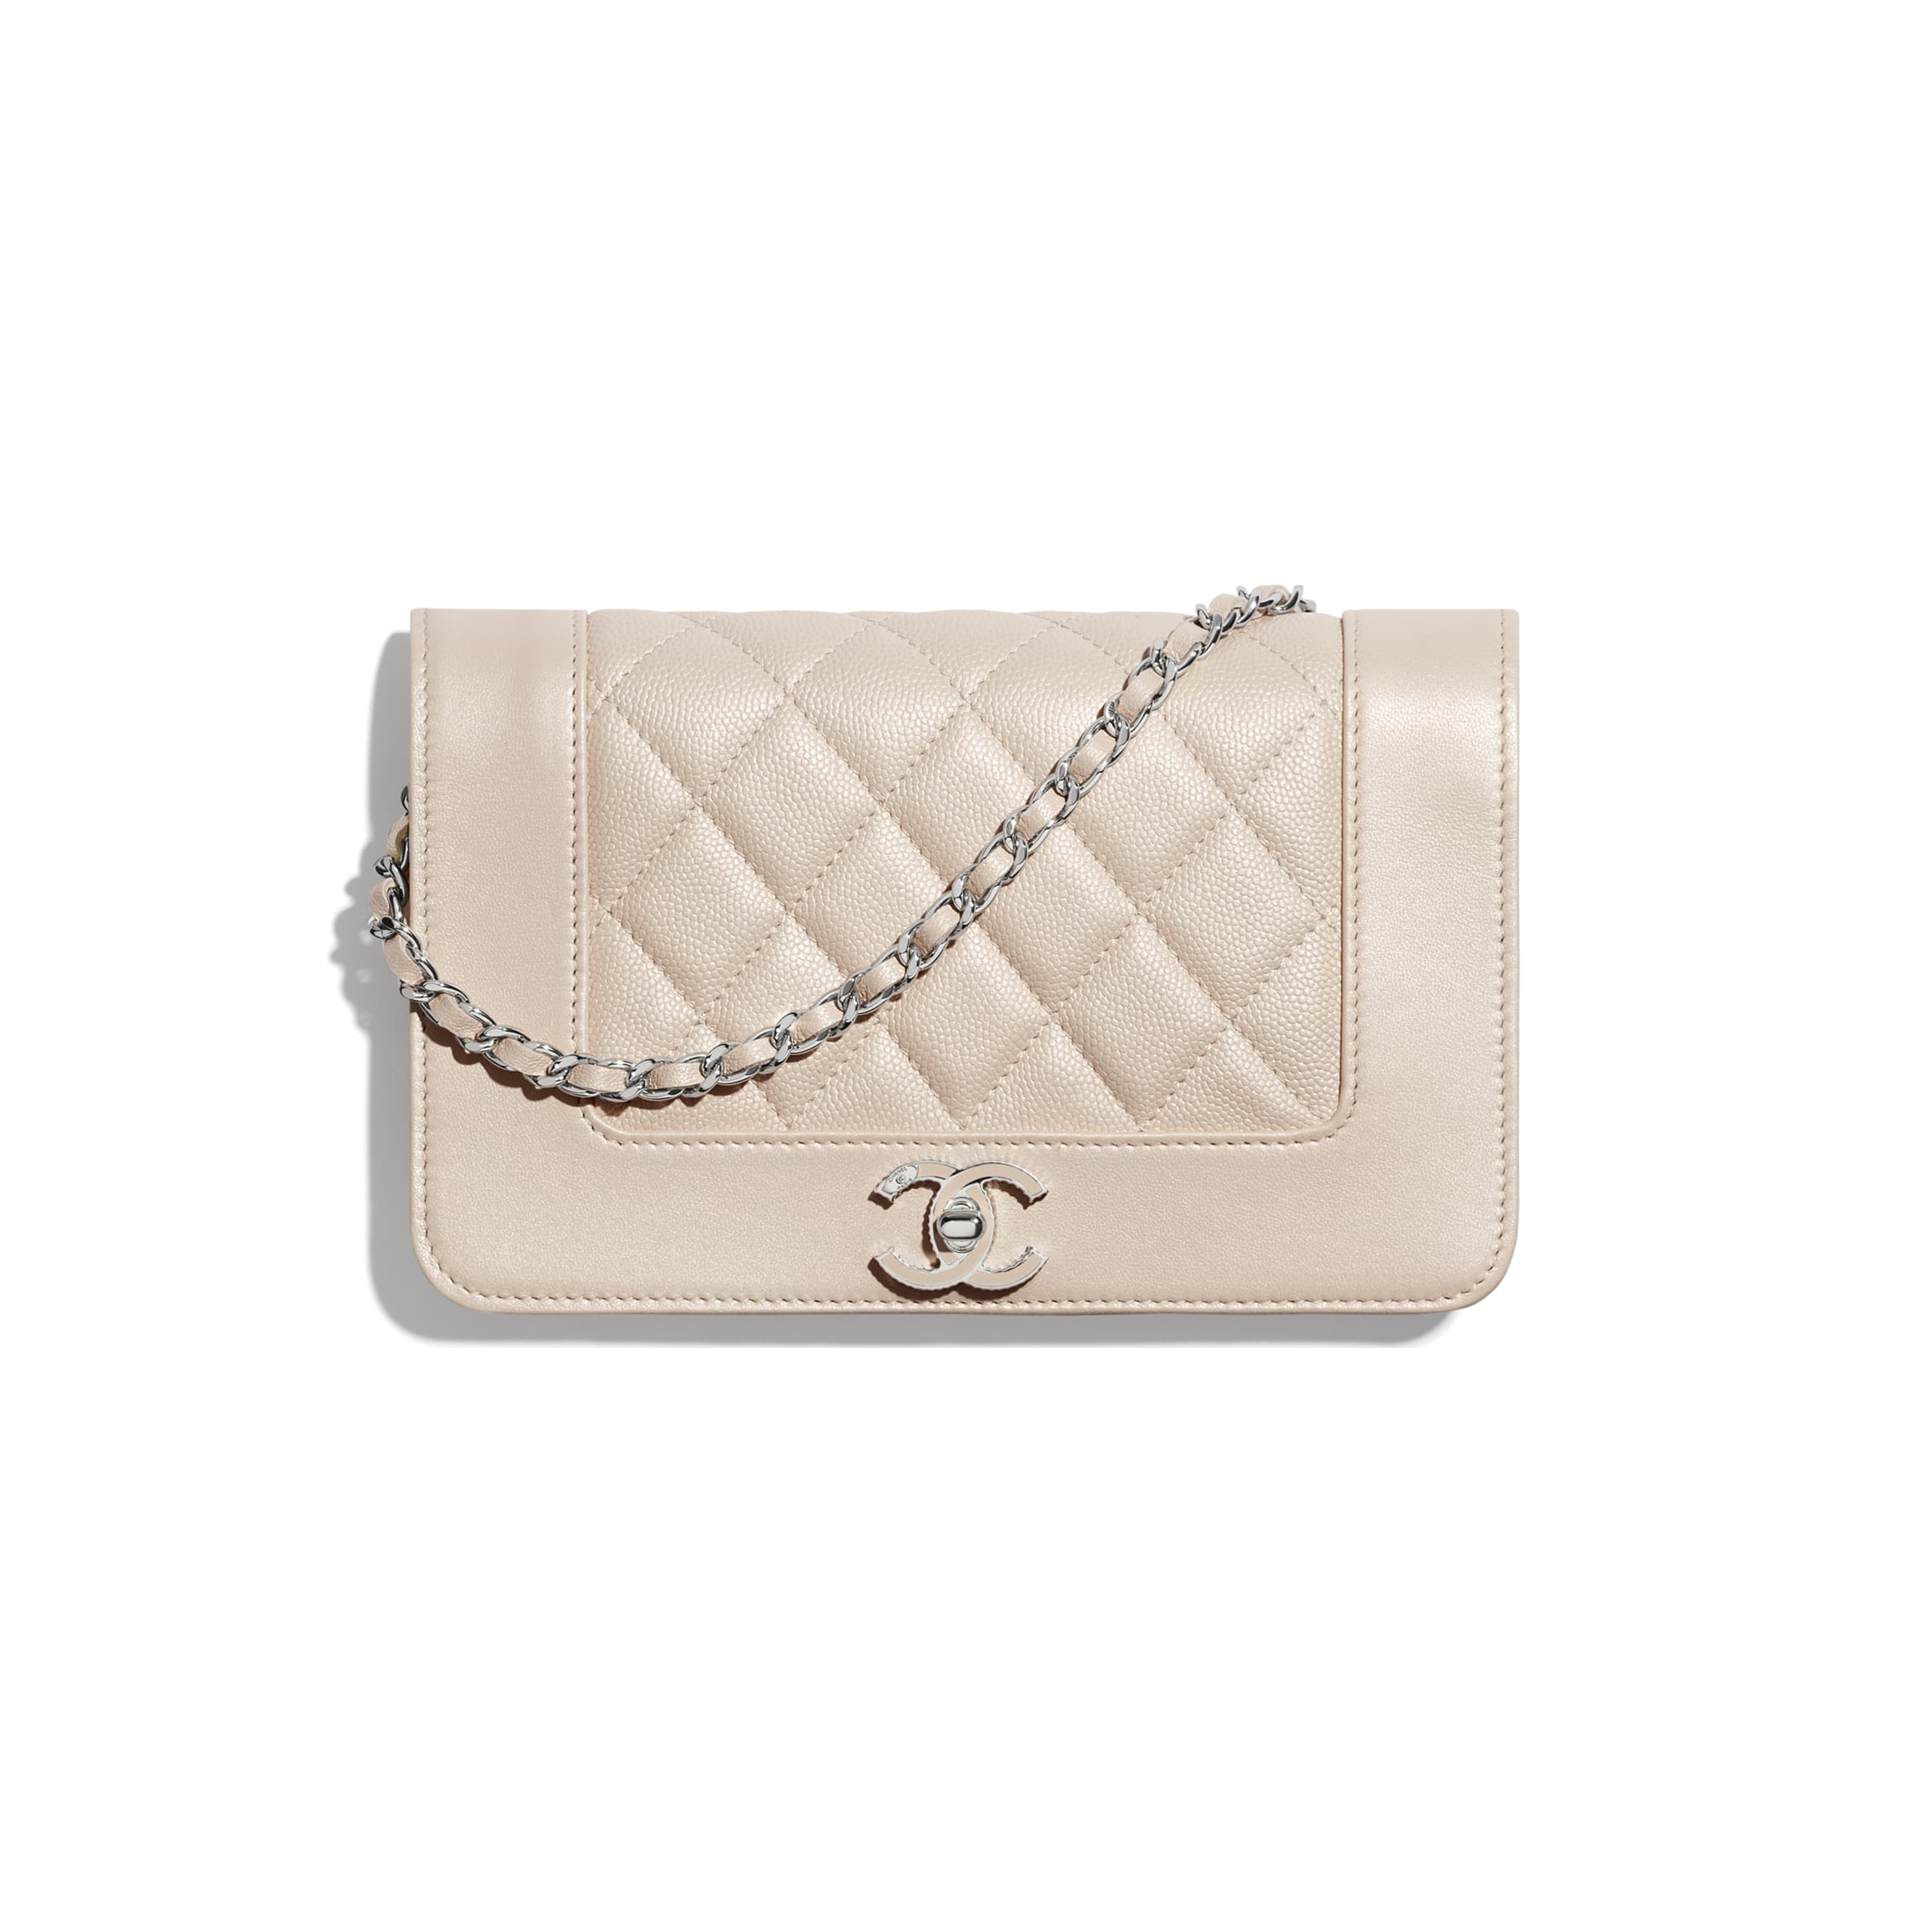 Wallet On Chain - Beige - Grained Calfskin, Calfskin & Silver-Tone Metal - CHANEL - Default view - see standard sized version